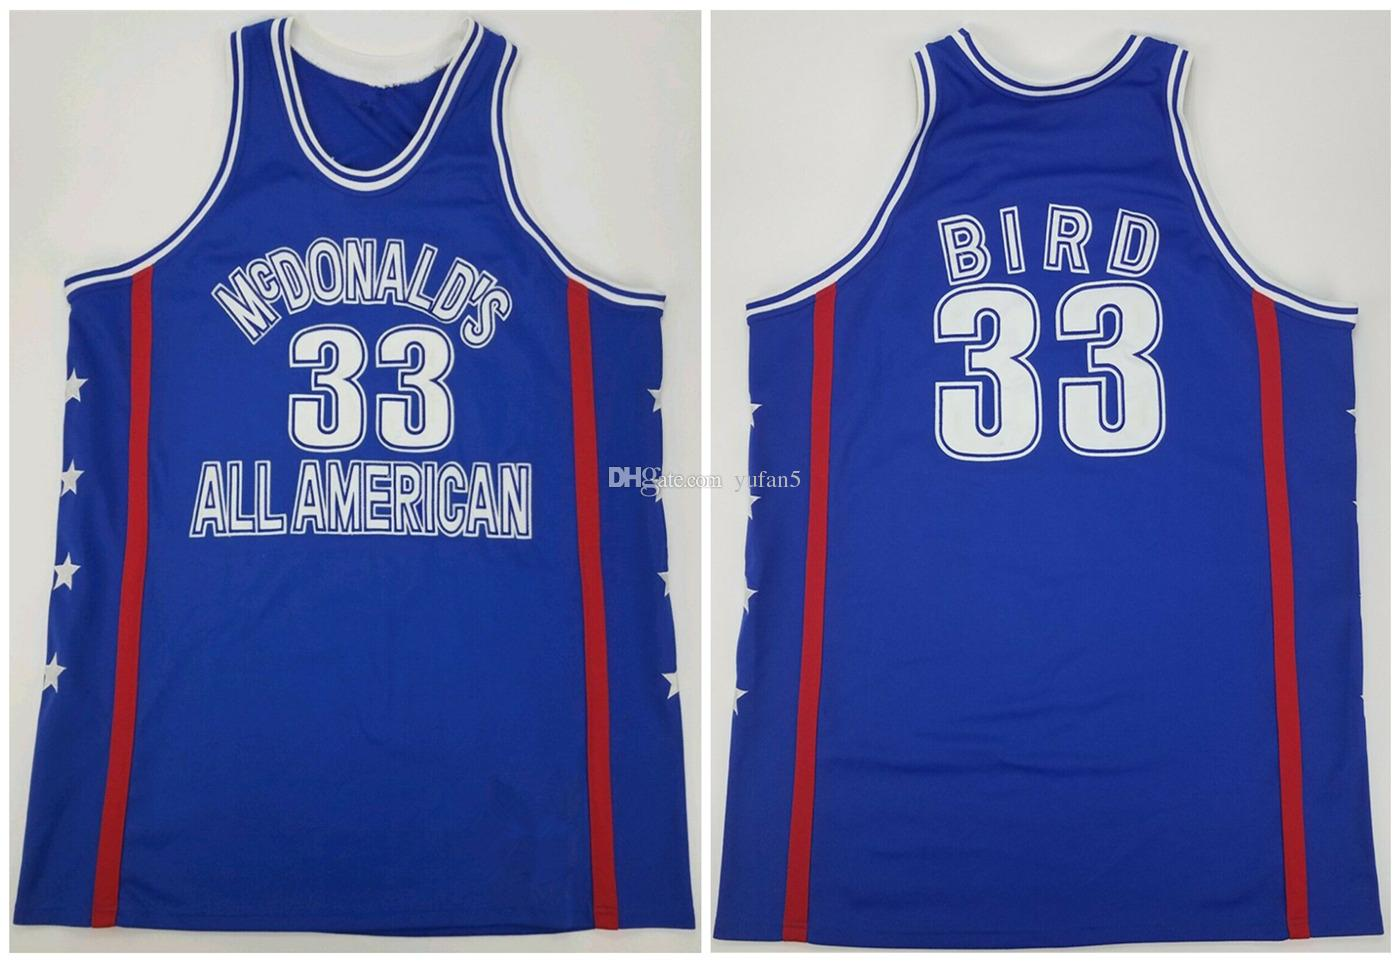 online store ab0b3 6b22a McDonald's All American Larry Bird #33 Retro Basketball Jersey Mens  Stitched Custom Any Number Name Jerseys